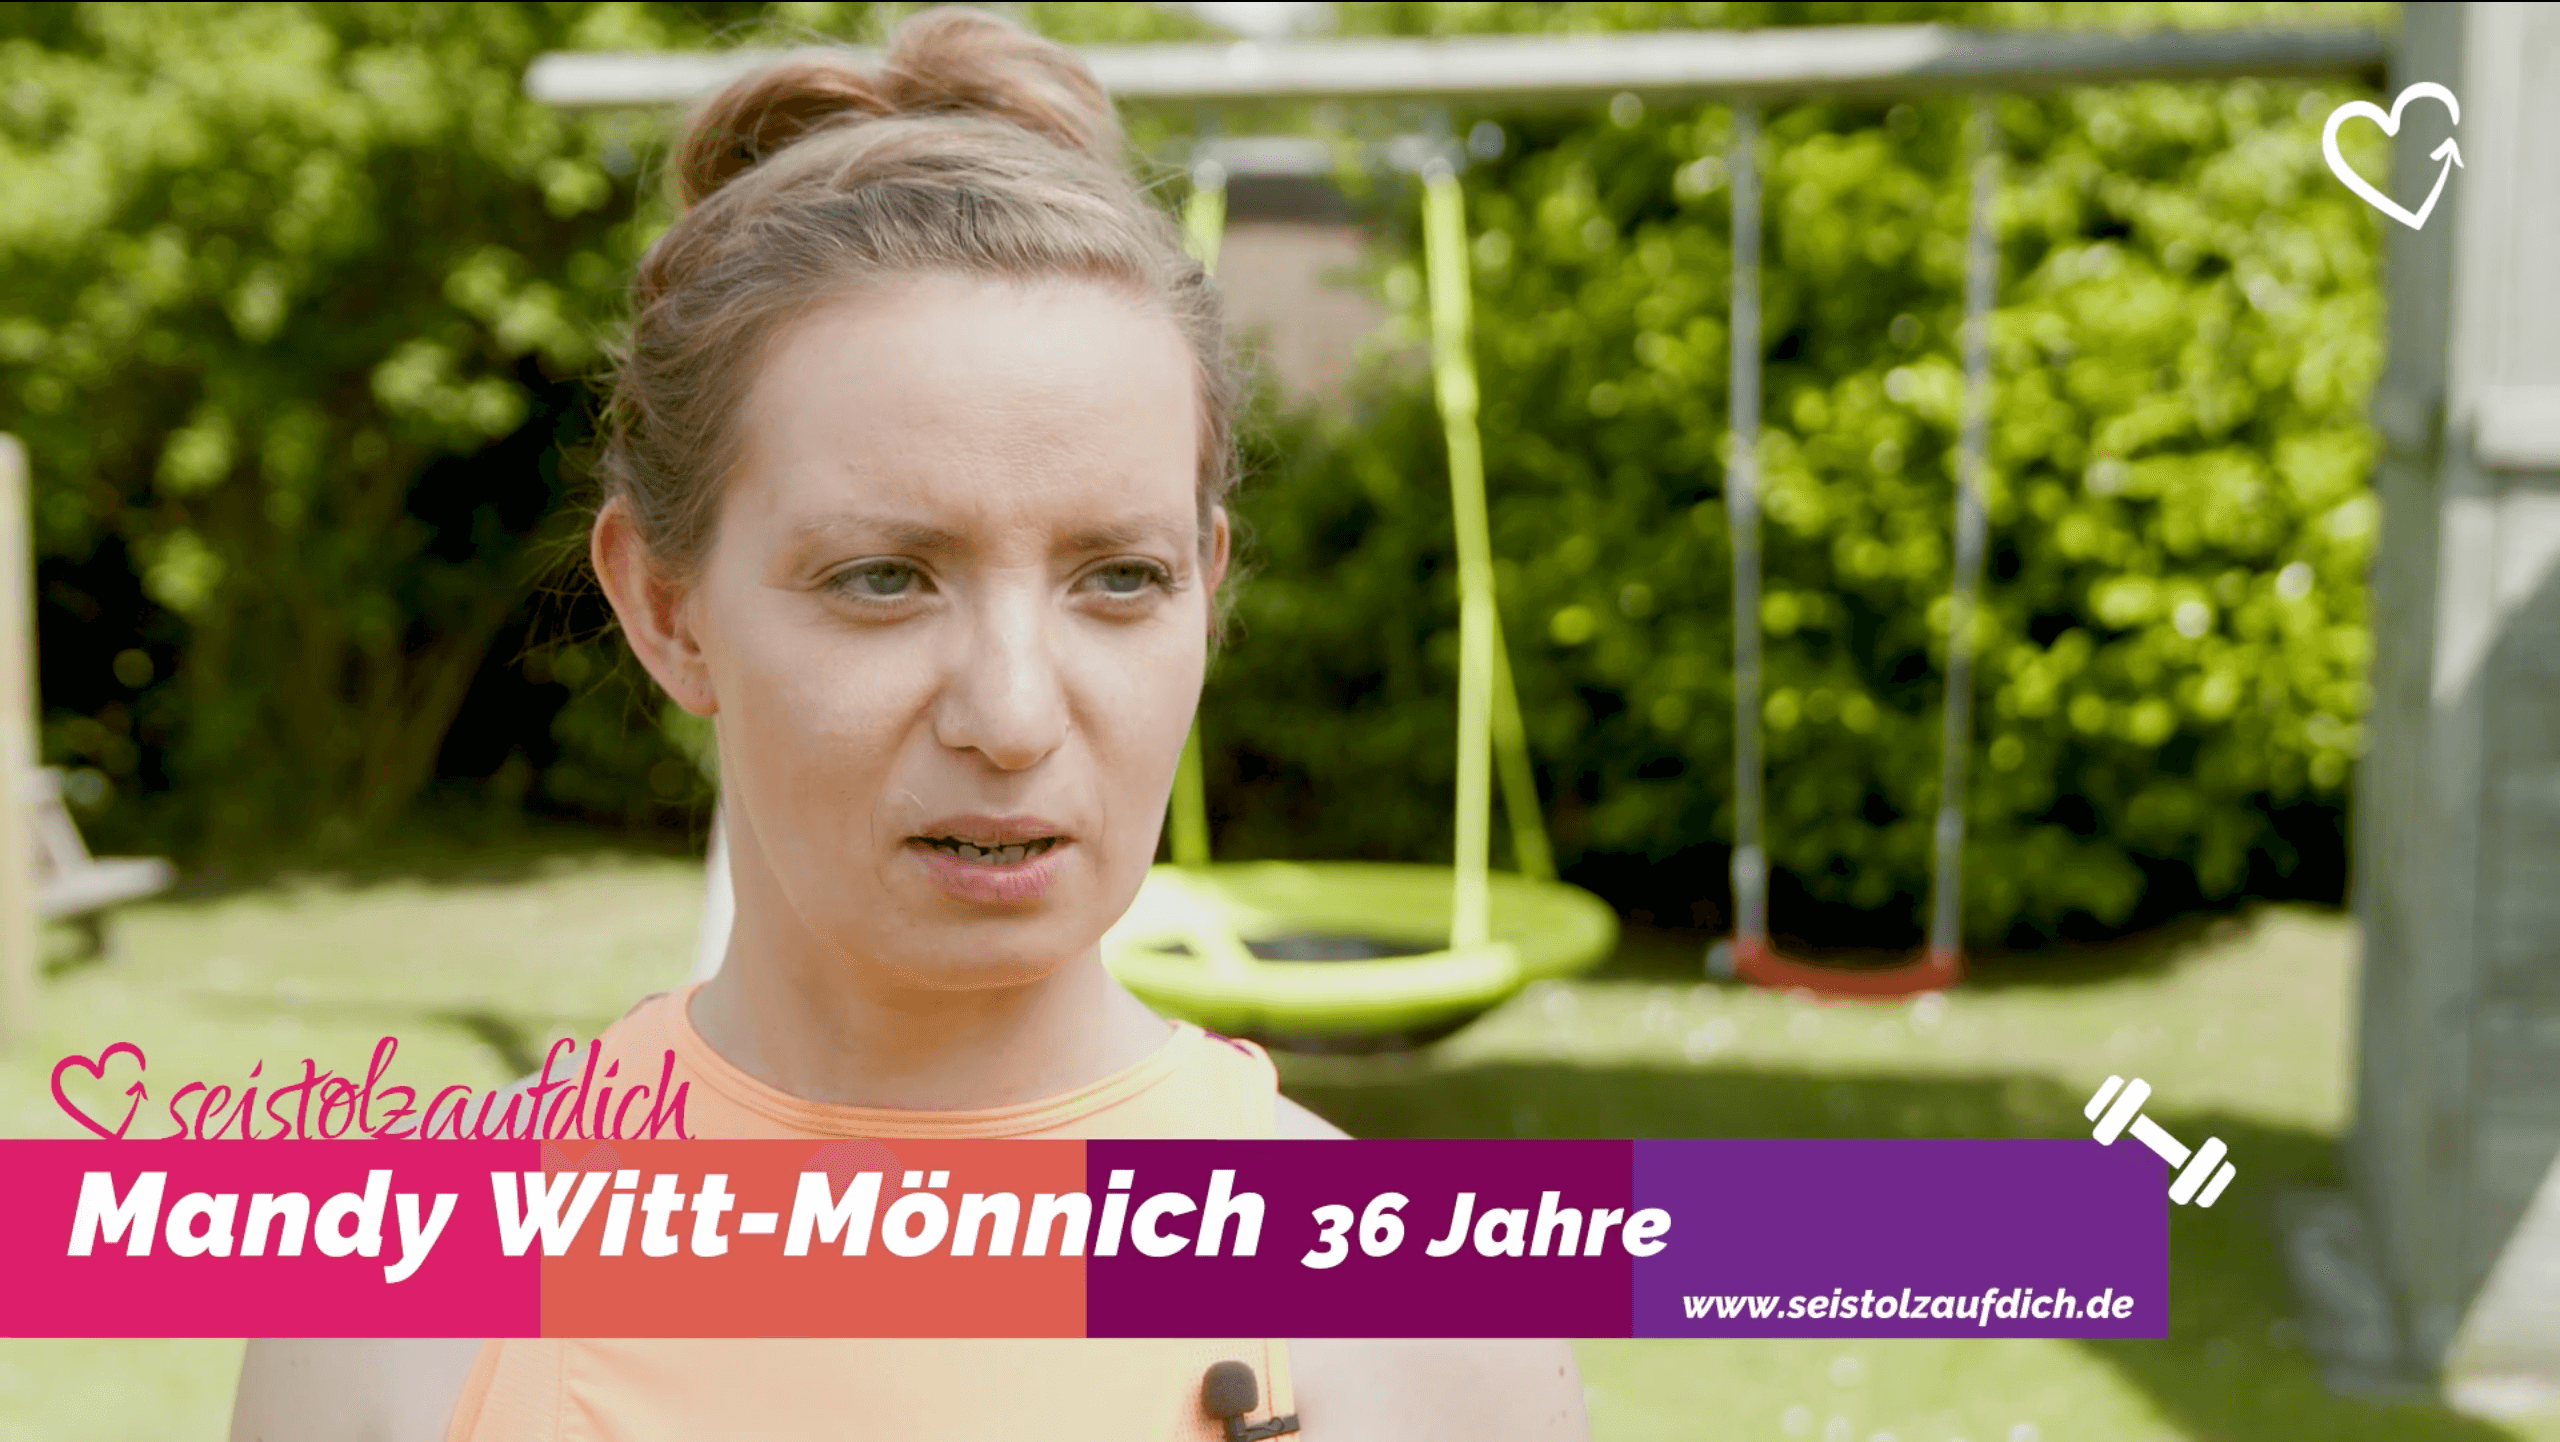 Mandy im seistolzaufdich-Interview